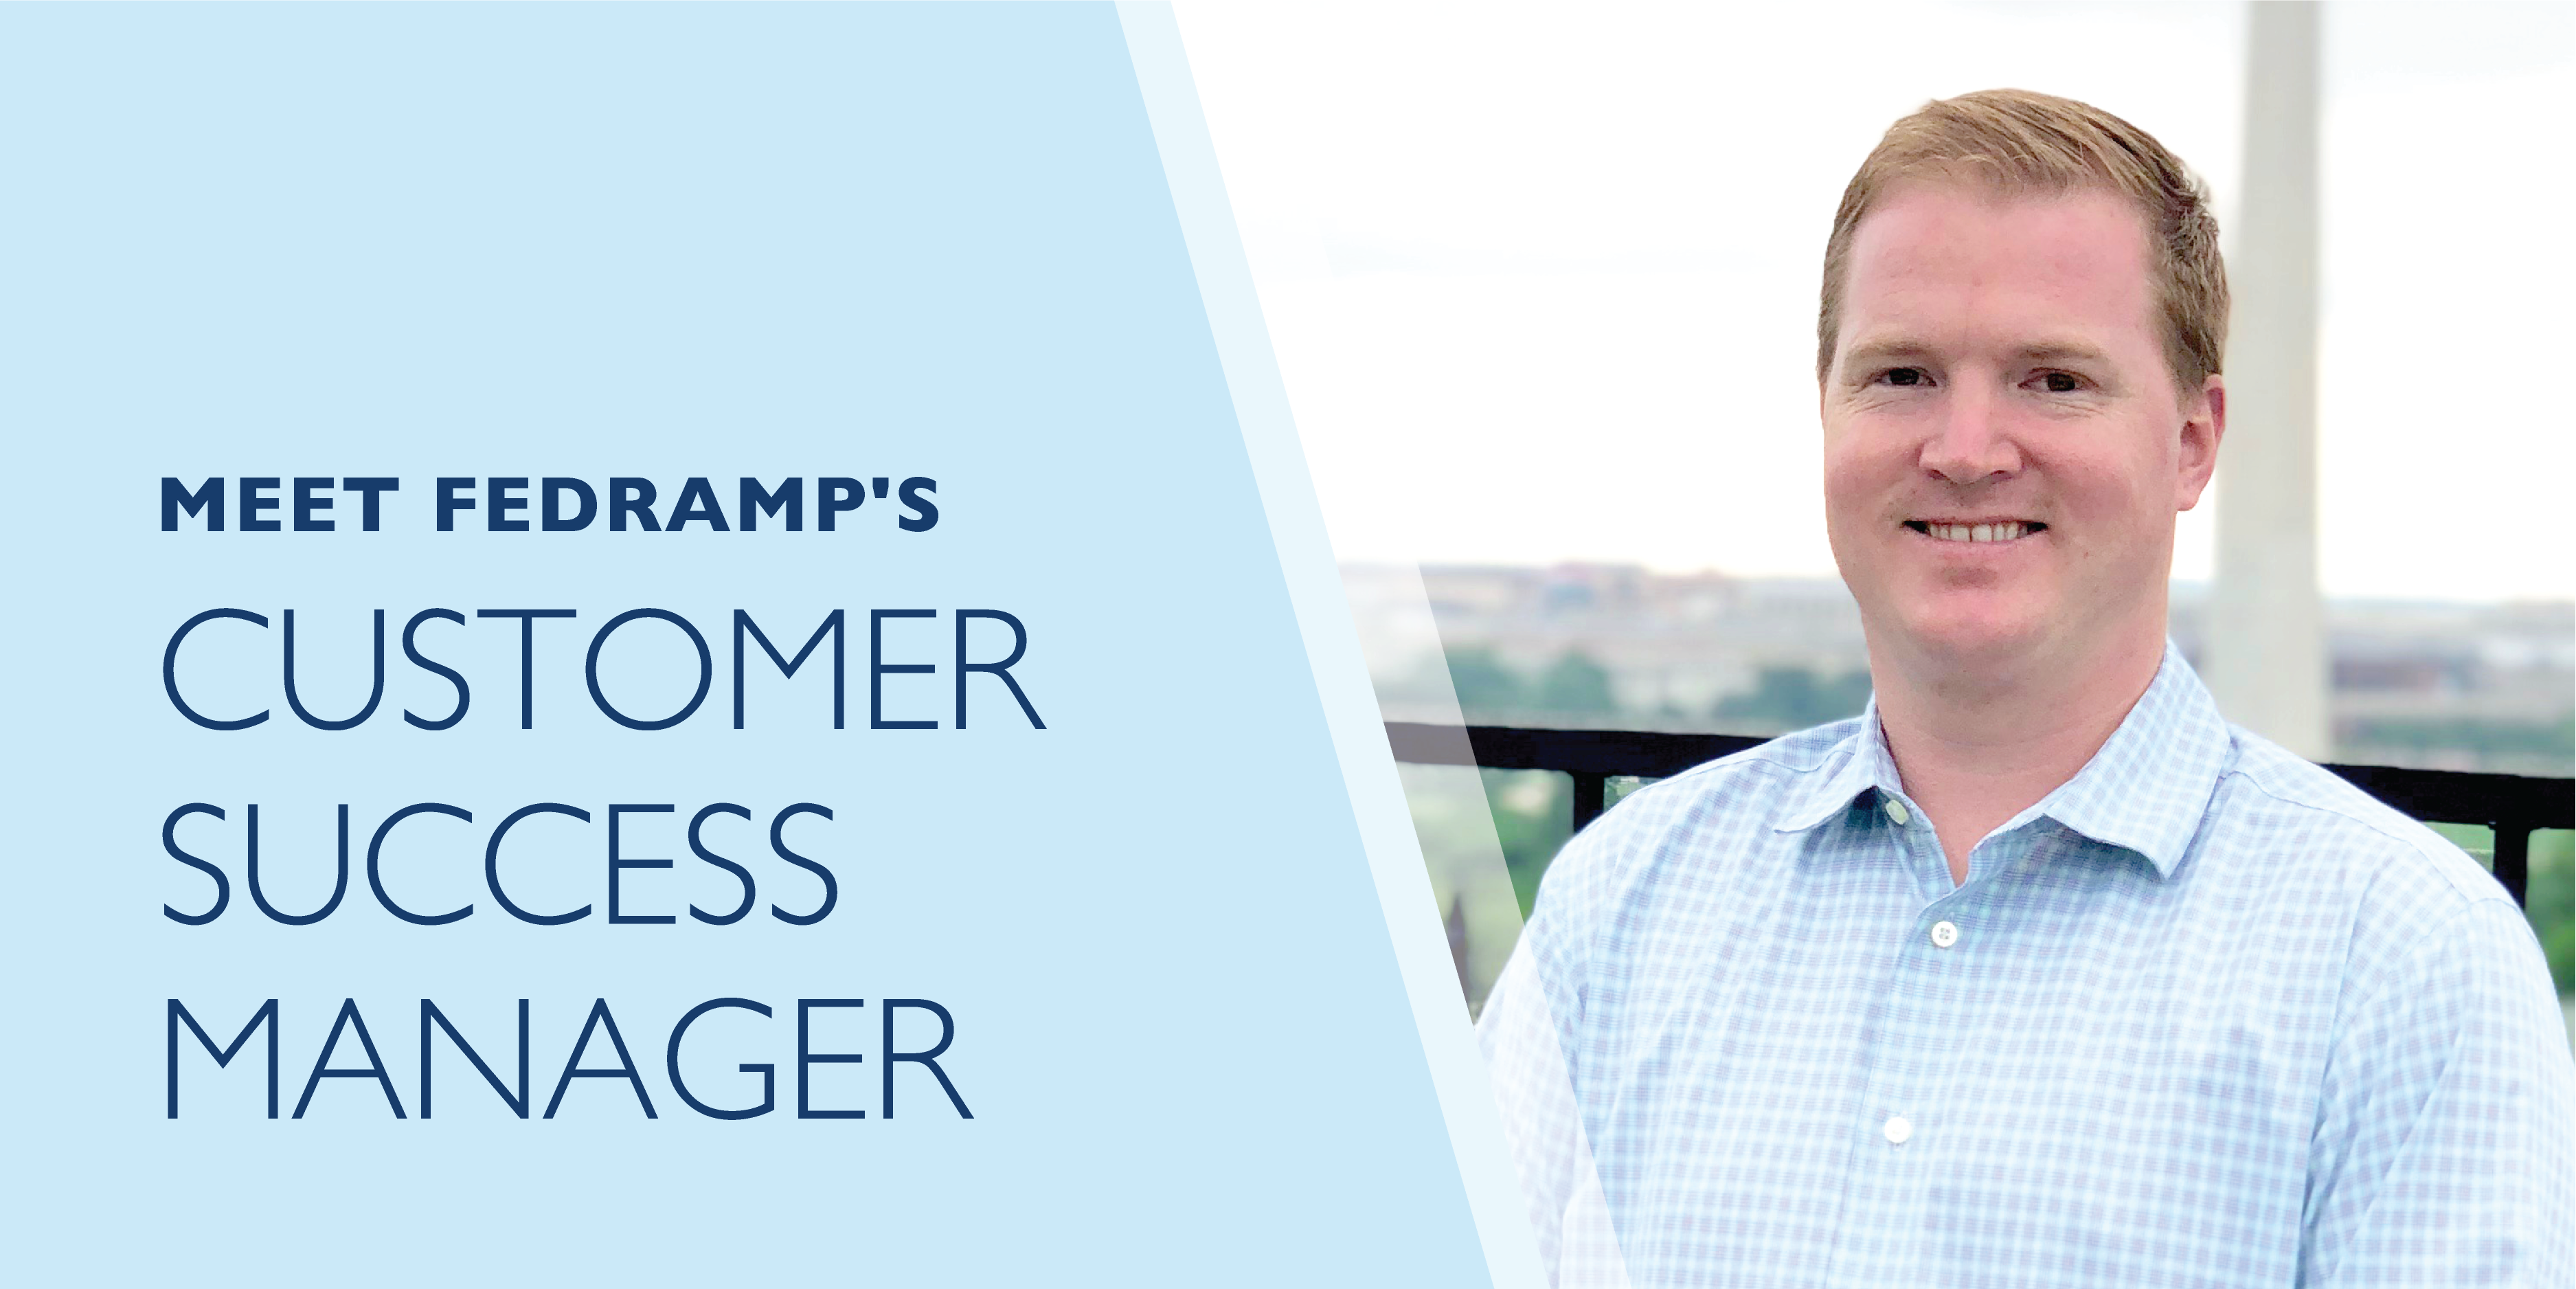 Meet FedRAMP's Customer Success Manager